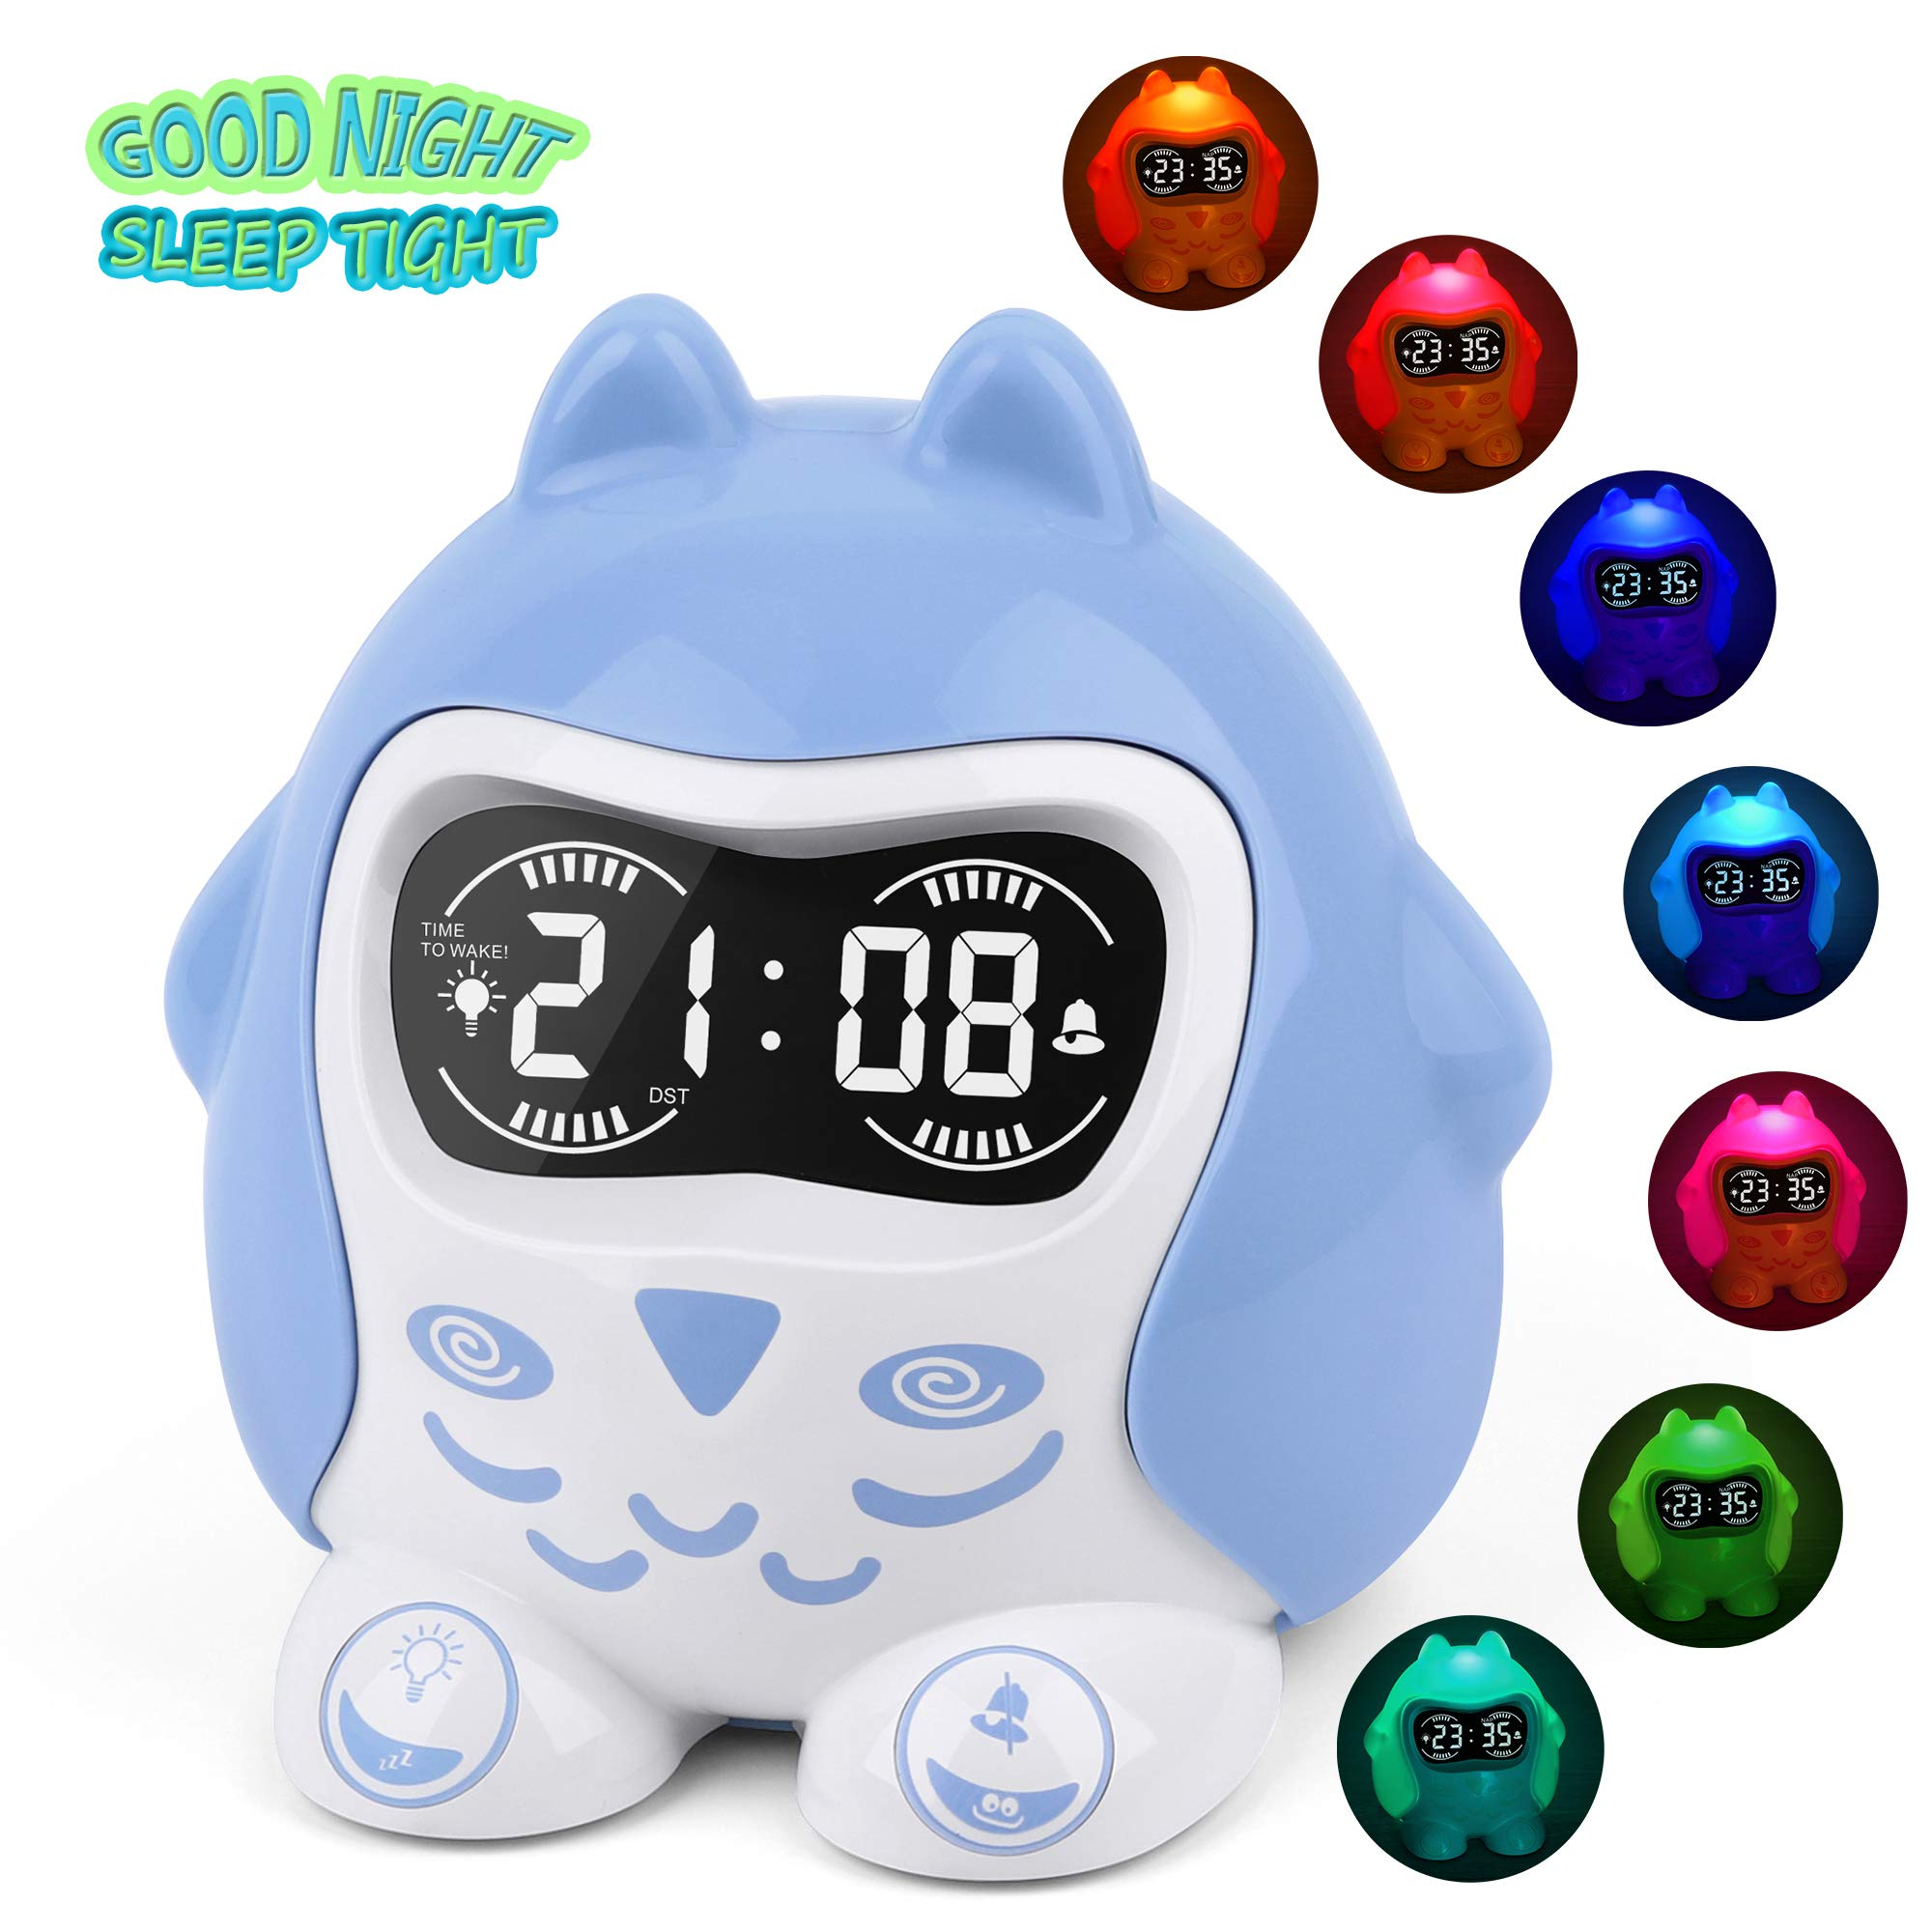 White Noise Machine, Sleep Soother Sound Therapy with 9 Sounds & Lullaby, 7-Color Night Light, Plug In/Battery Powered, Sleep Training Time to Wake Digital Alarm Clock for Kids Baby Girls Boys Bedroom by Mesqool